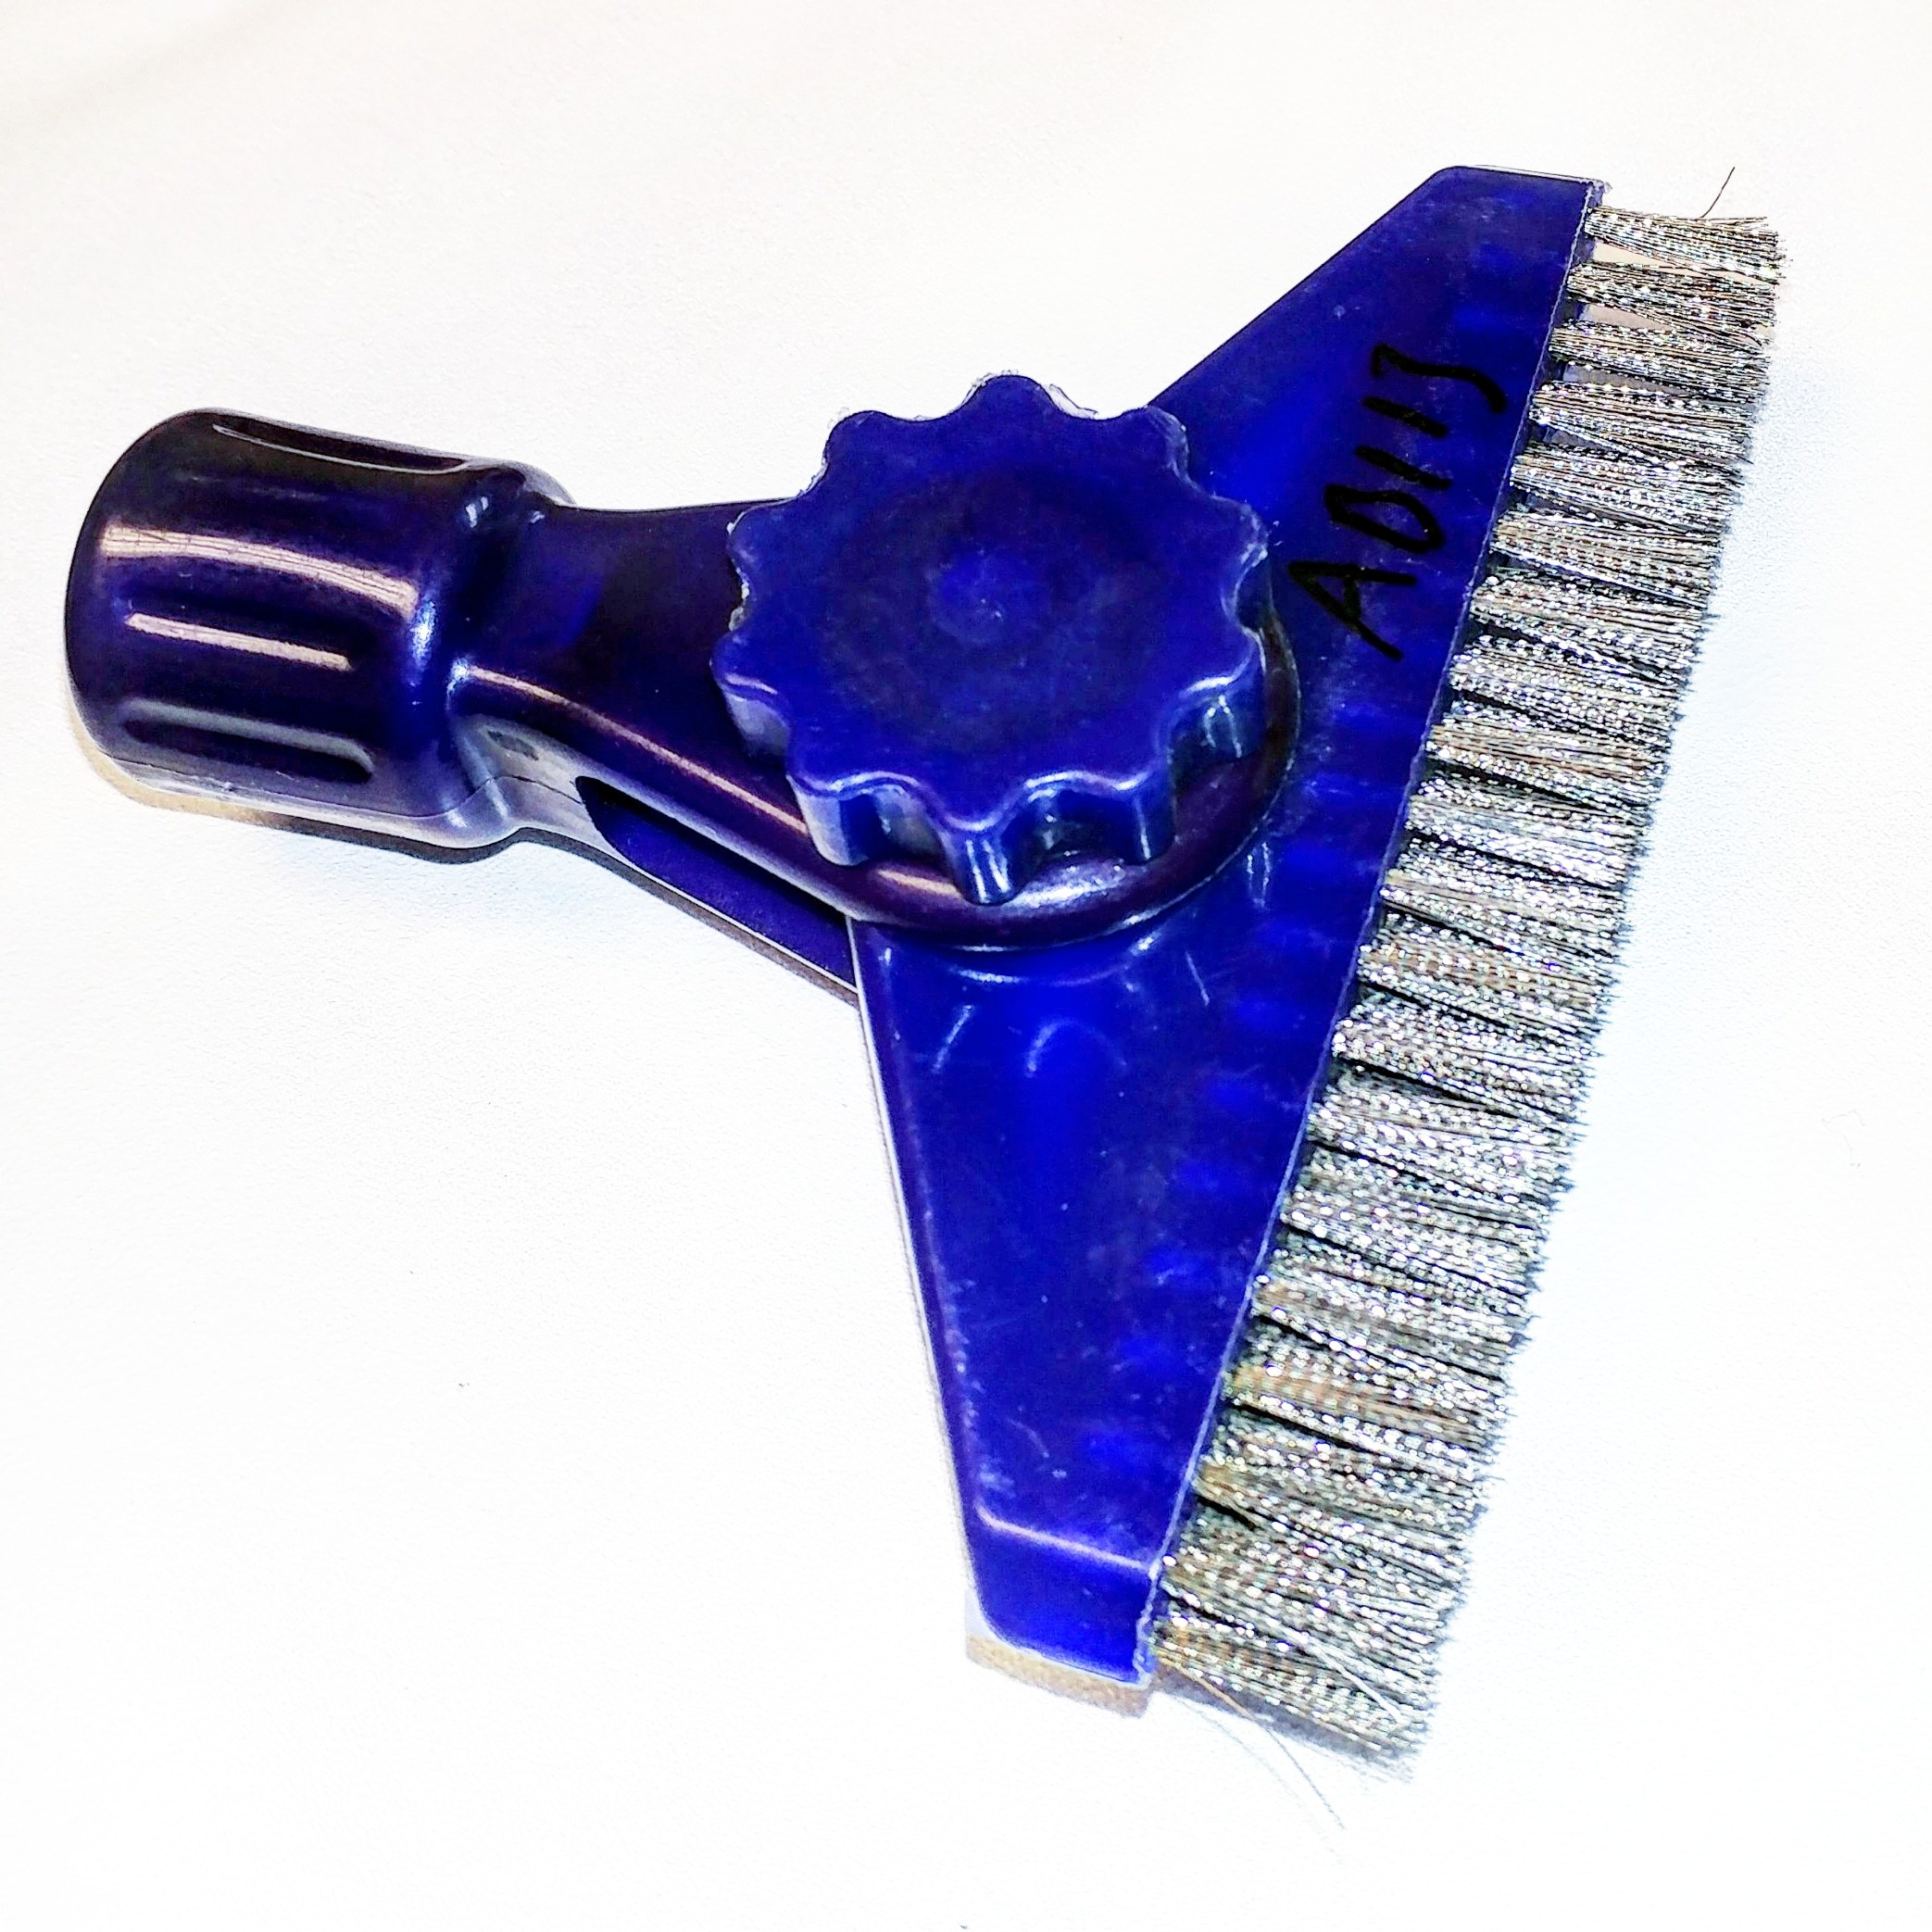 Grout Brush Stainless Steel AB113